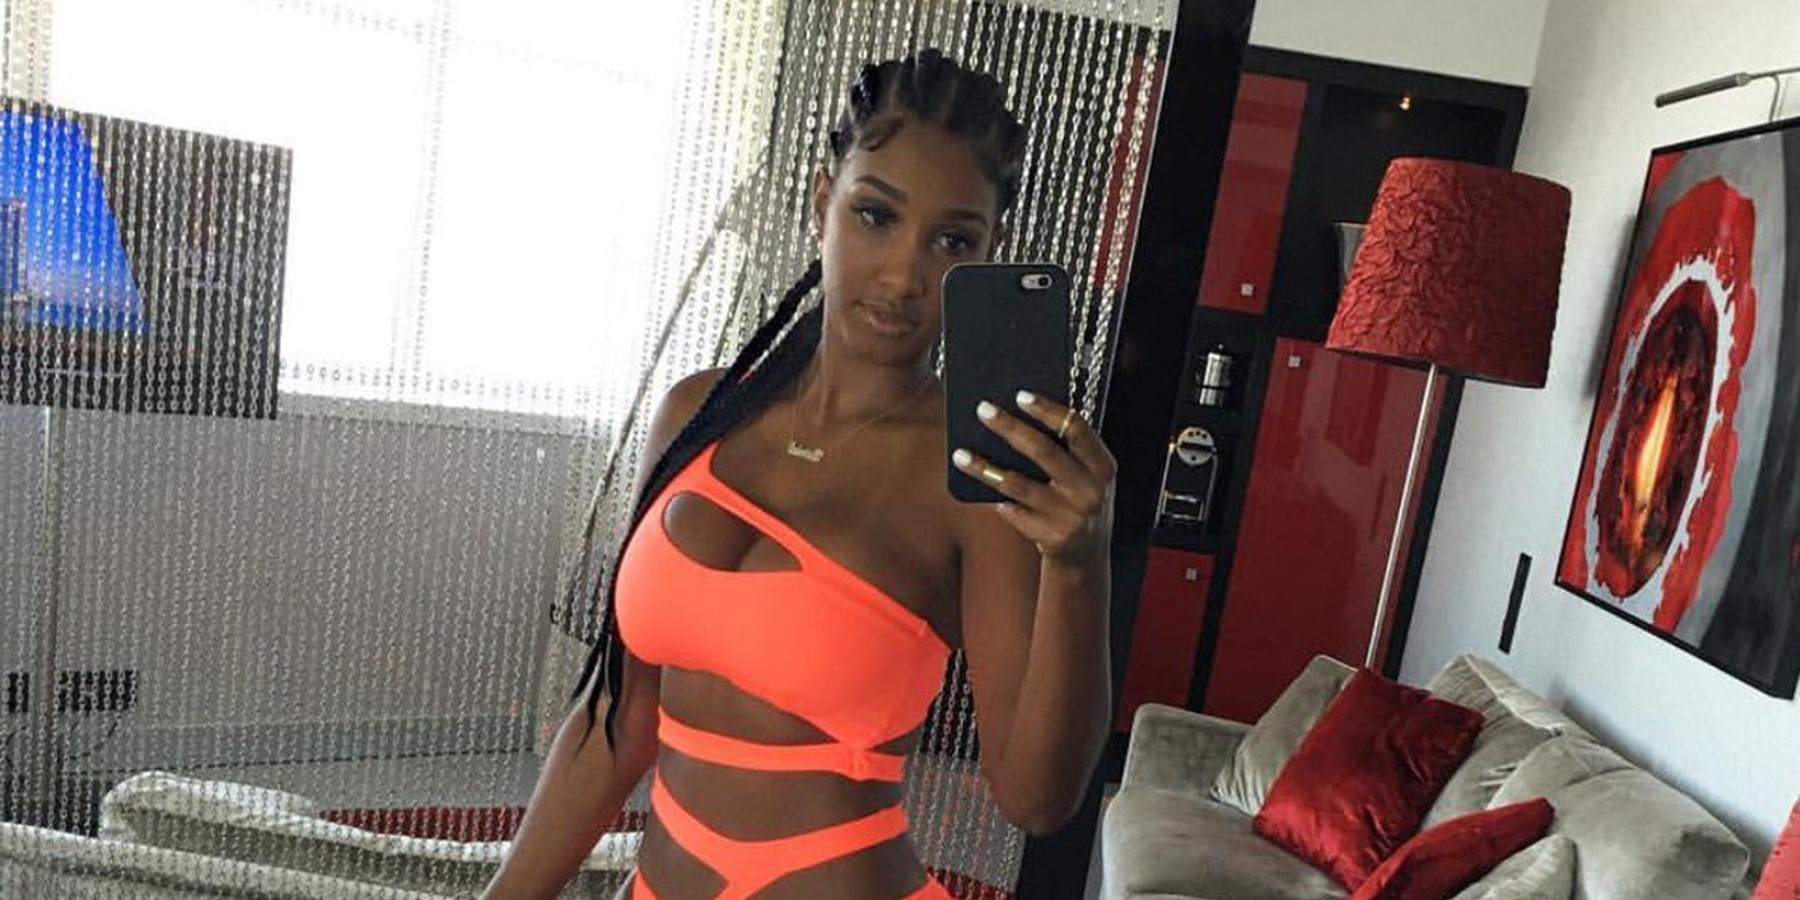 Meek Mill Gets Playful With Bernice Burgos Online - Check Out His Comment On Her Racy Photo